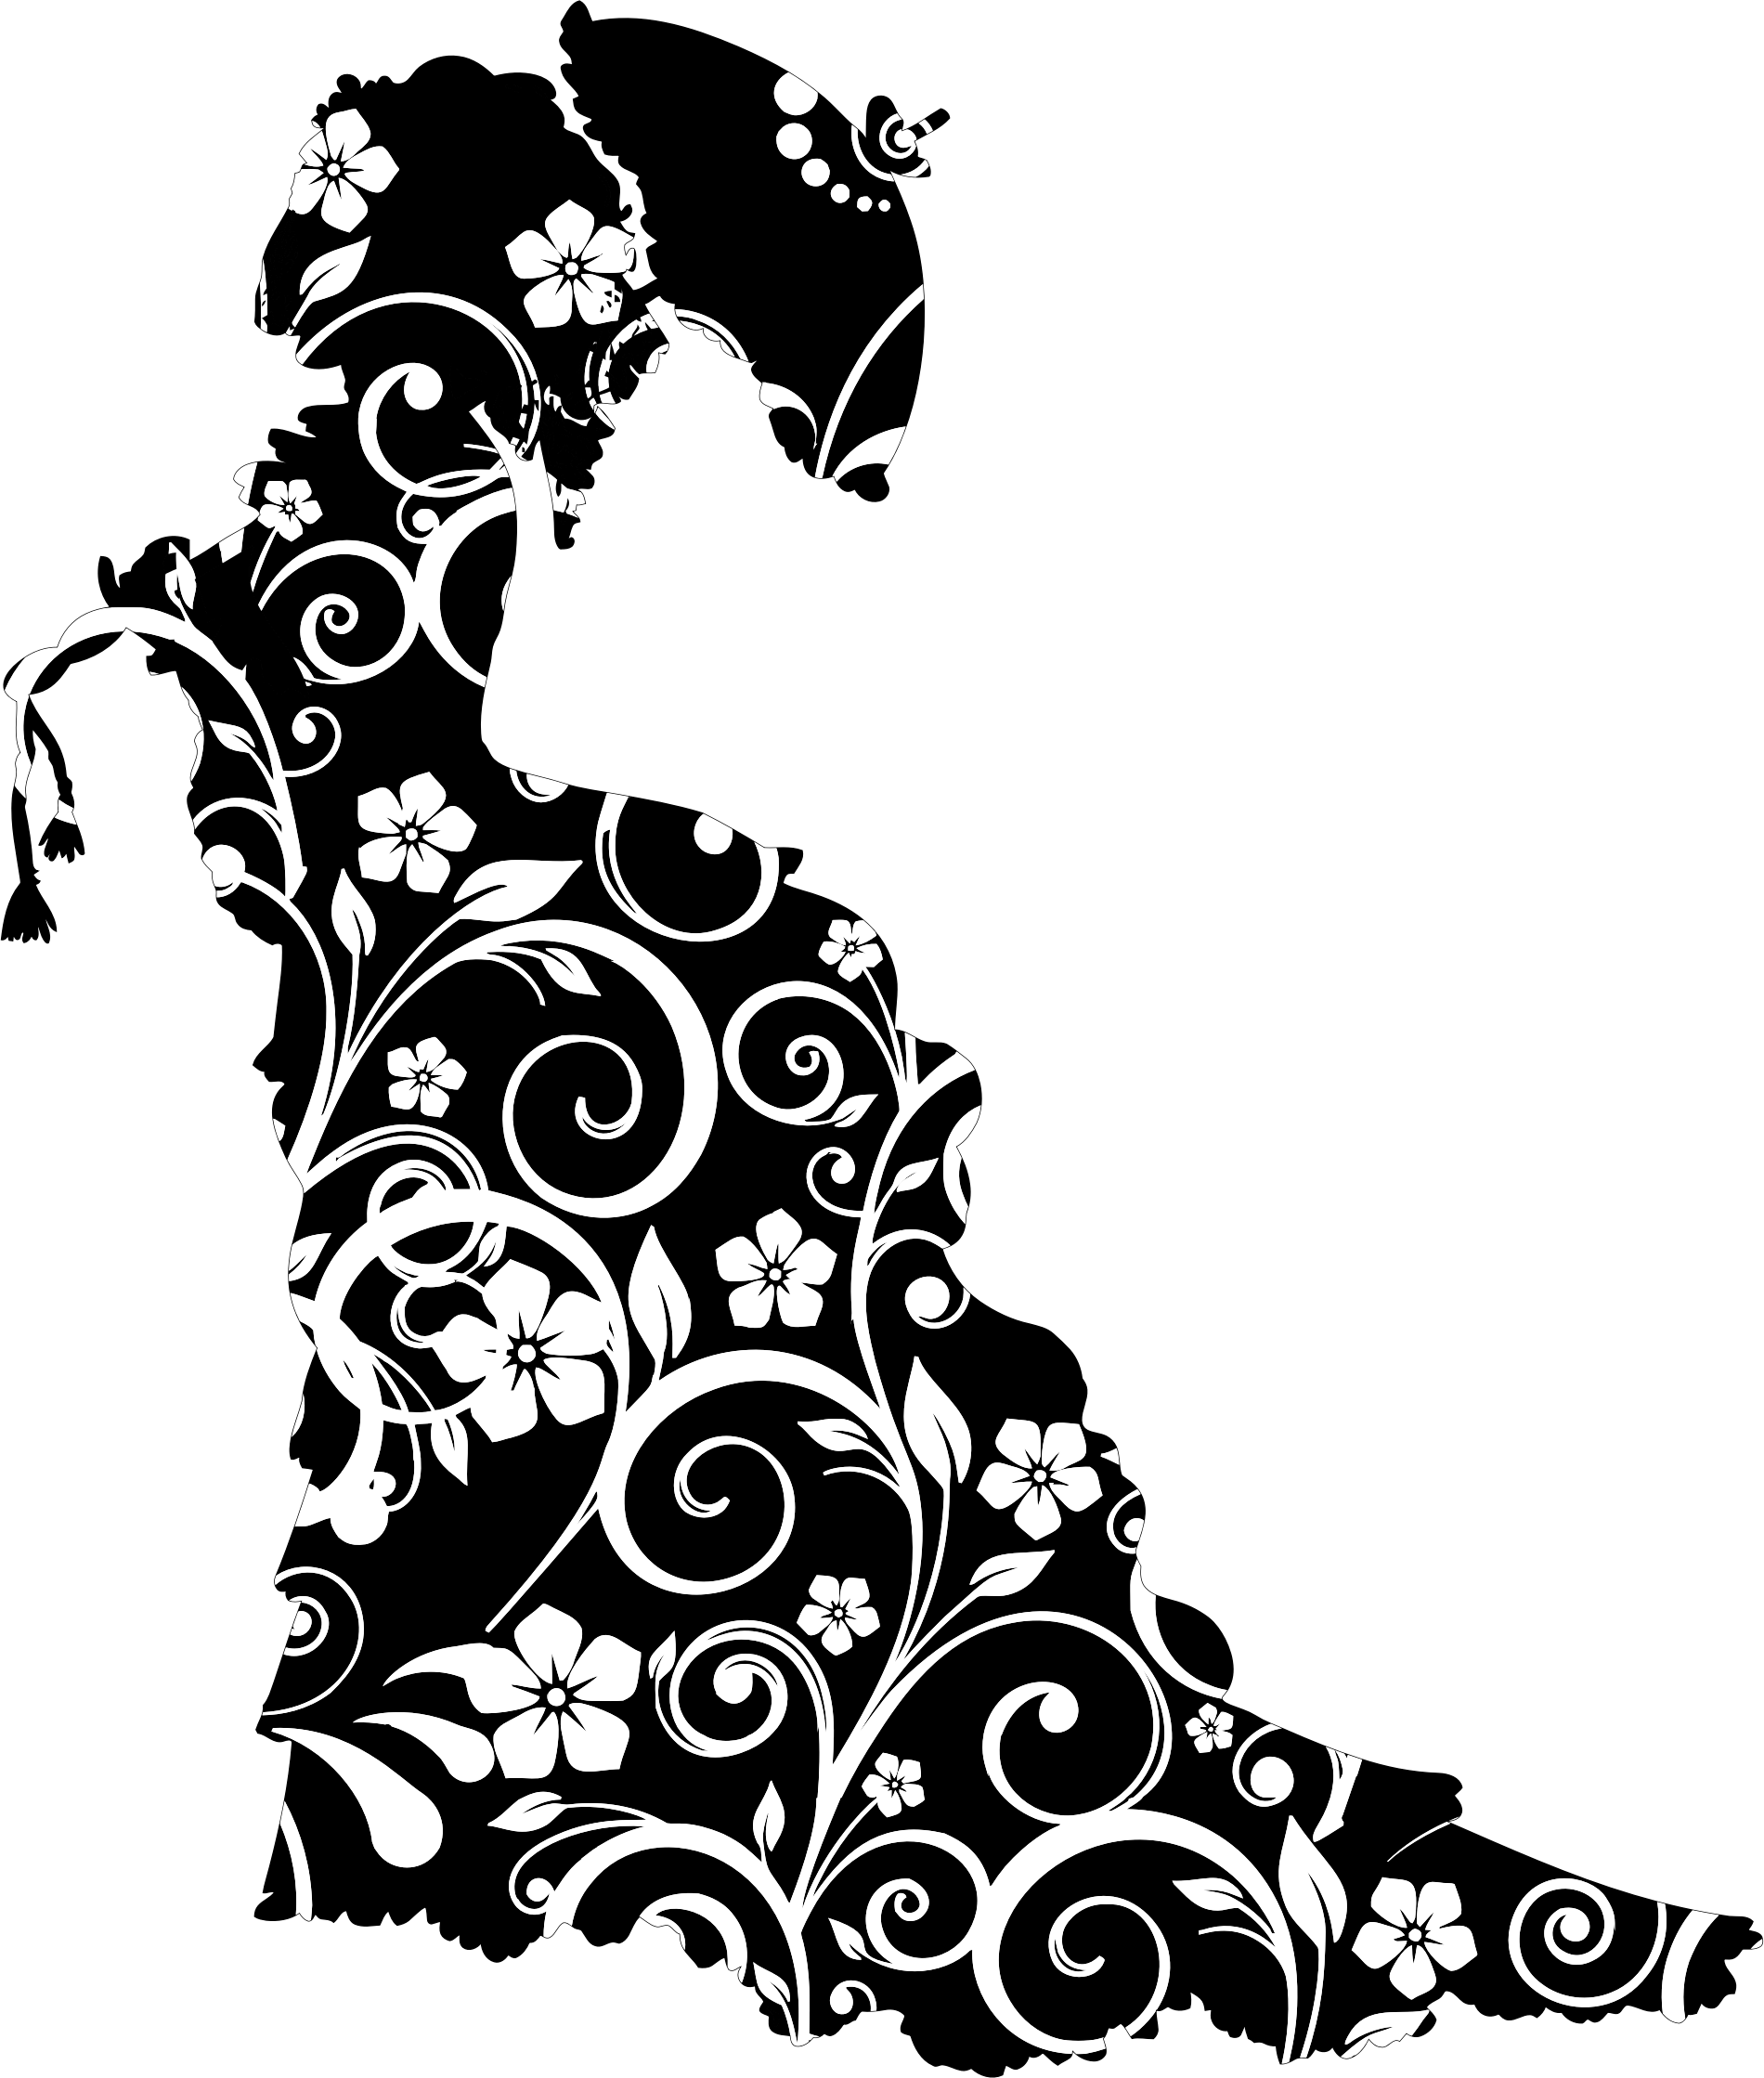 Floral Vintage Victorian Lady Silhouette by GDJ